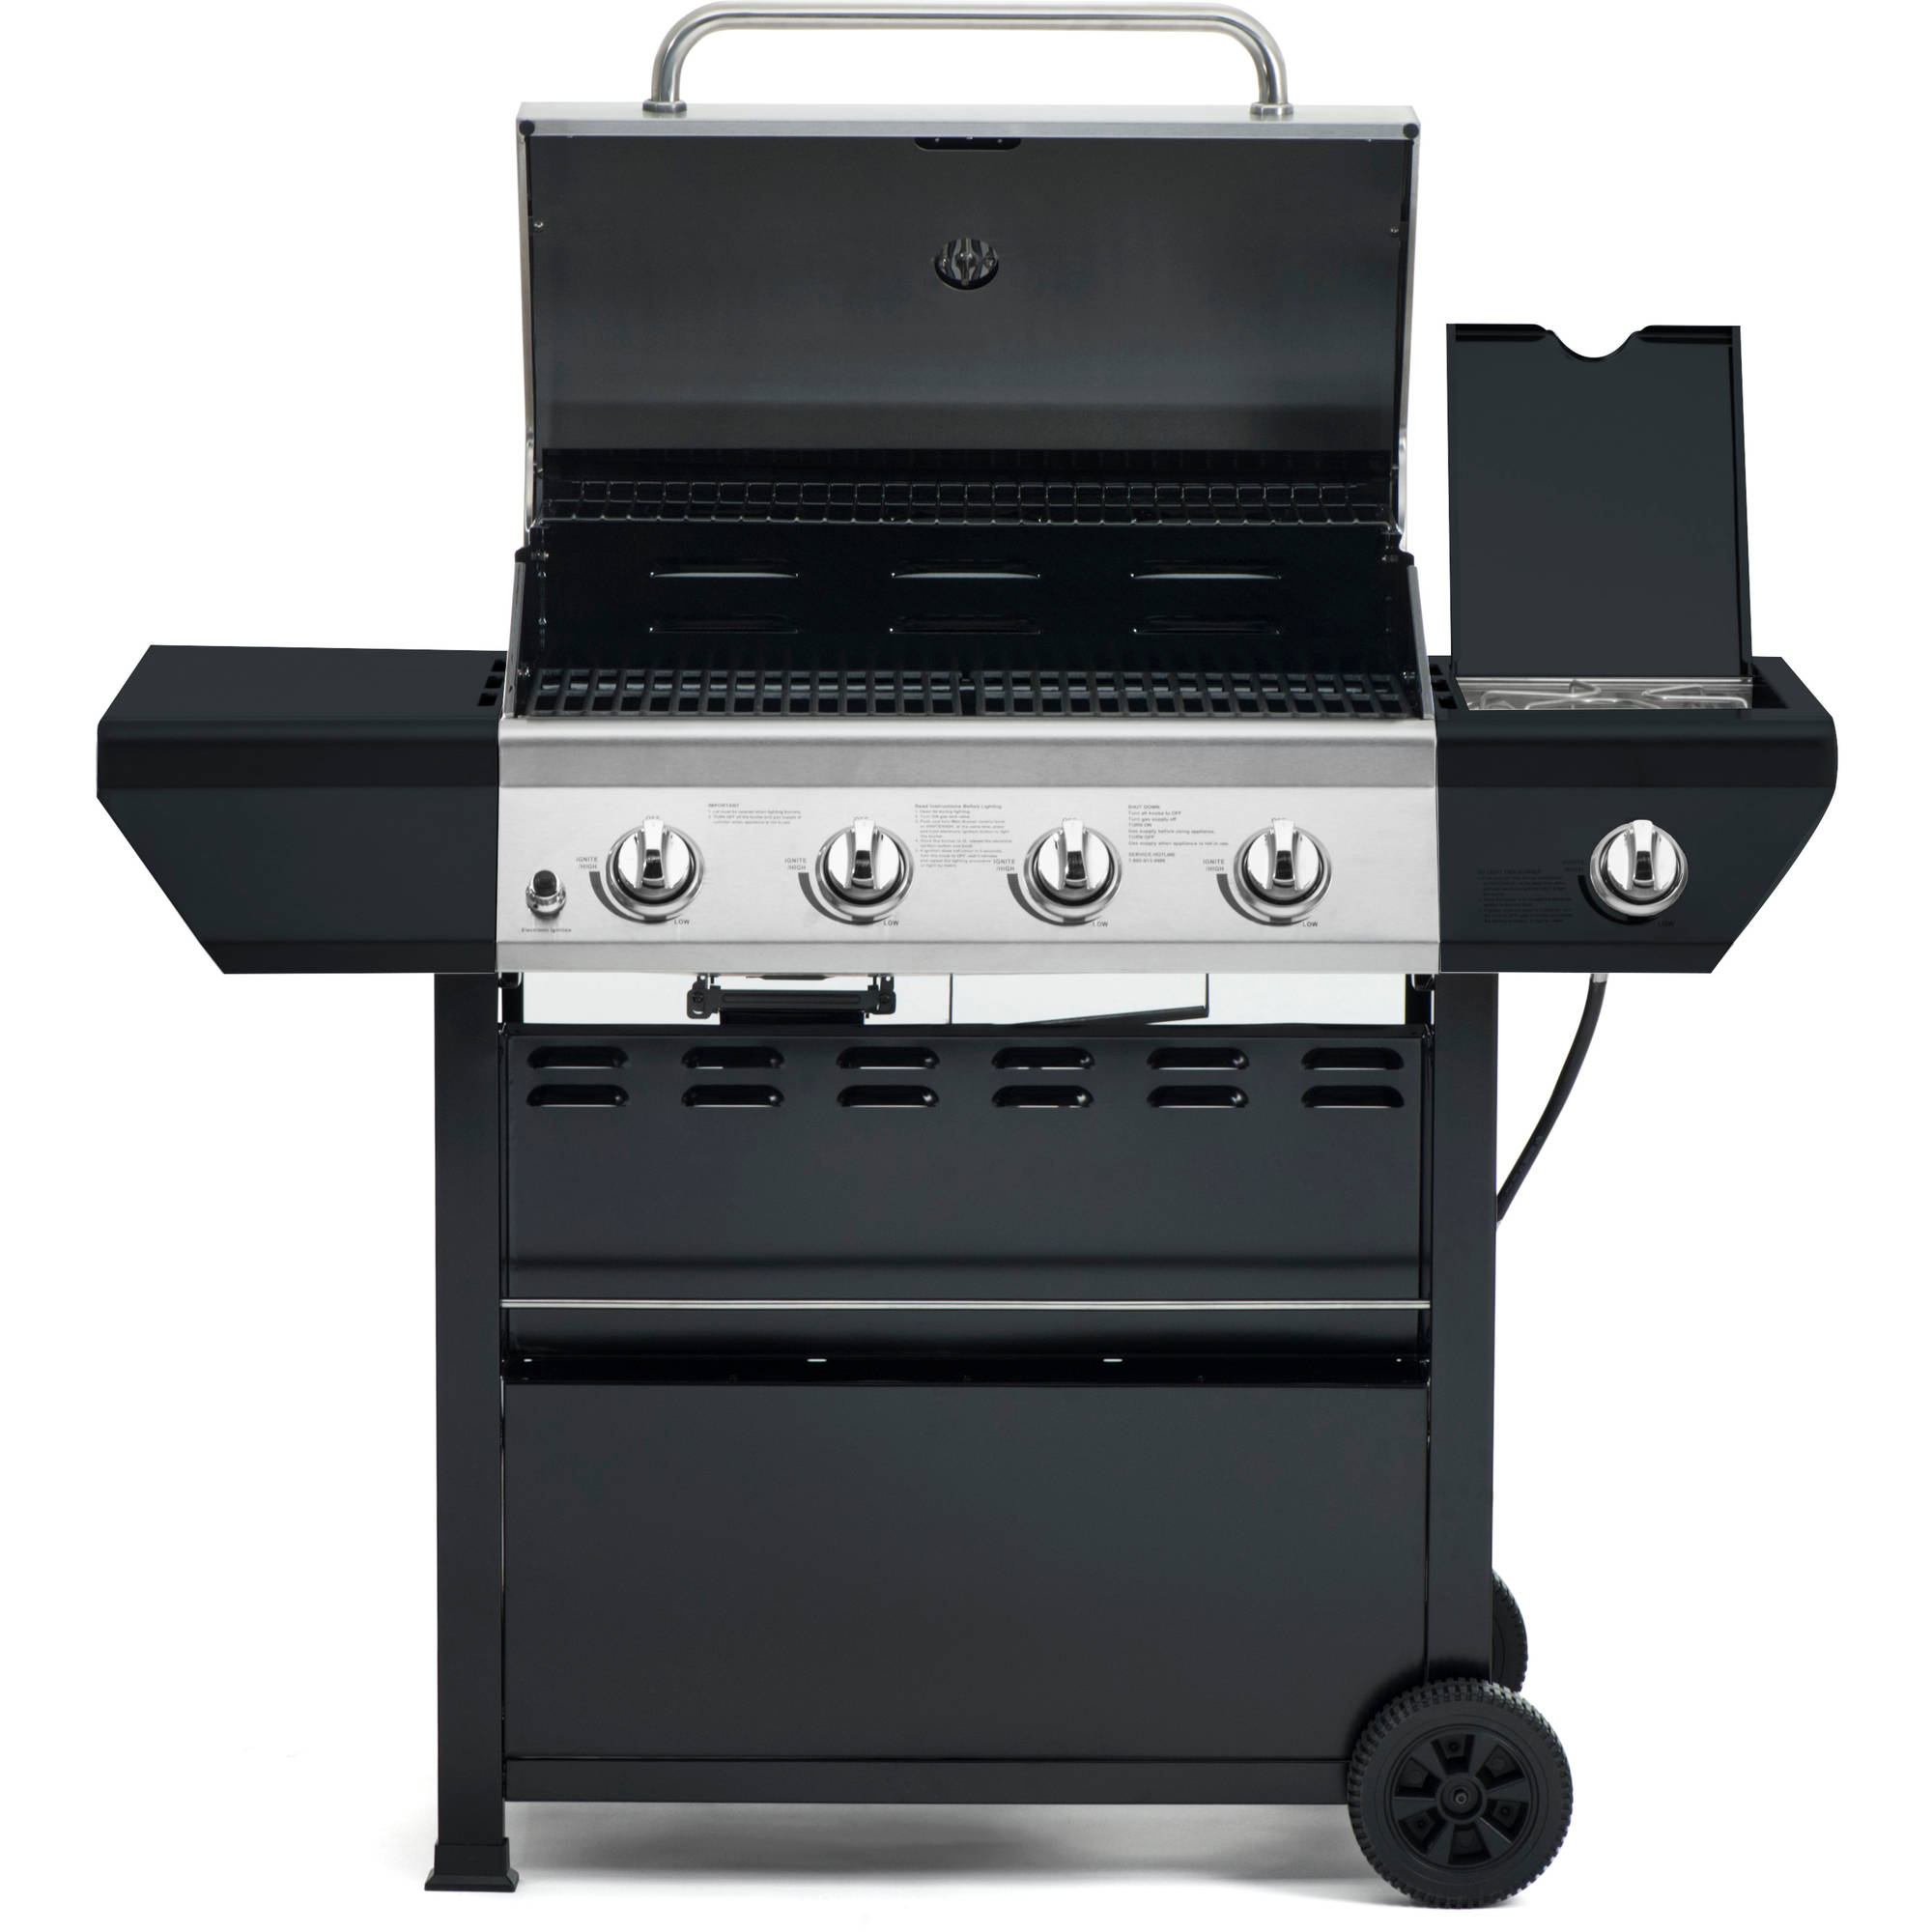 Flame Master Bbq.Grillmaster 4 Burner Propane Gas Grill With Side Burner Walmart Com